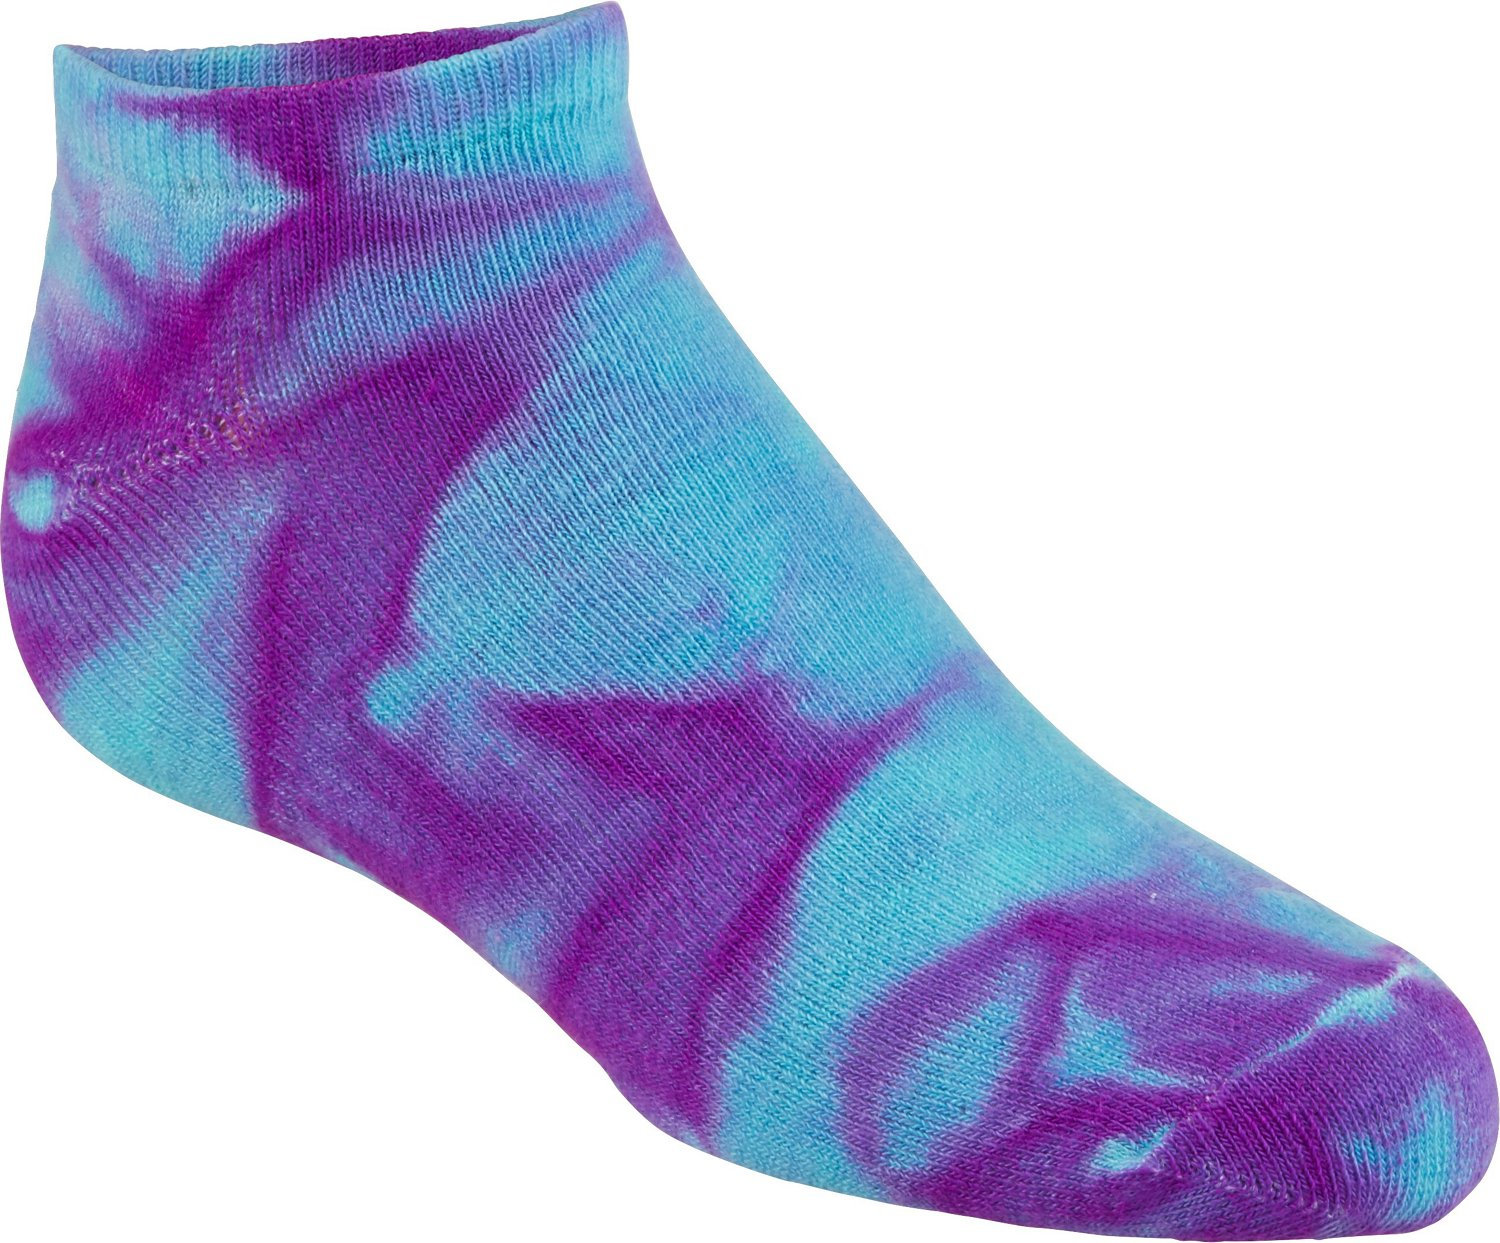 BCG Women's True Bright Tie-Dye Fashion Socks 6 Pack - view number 2